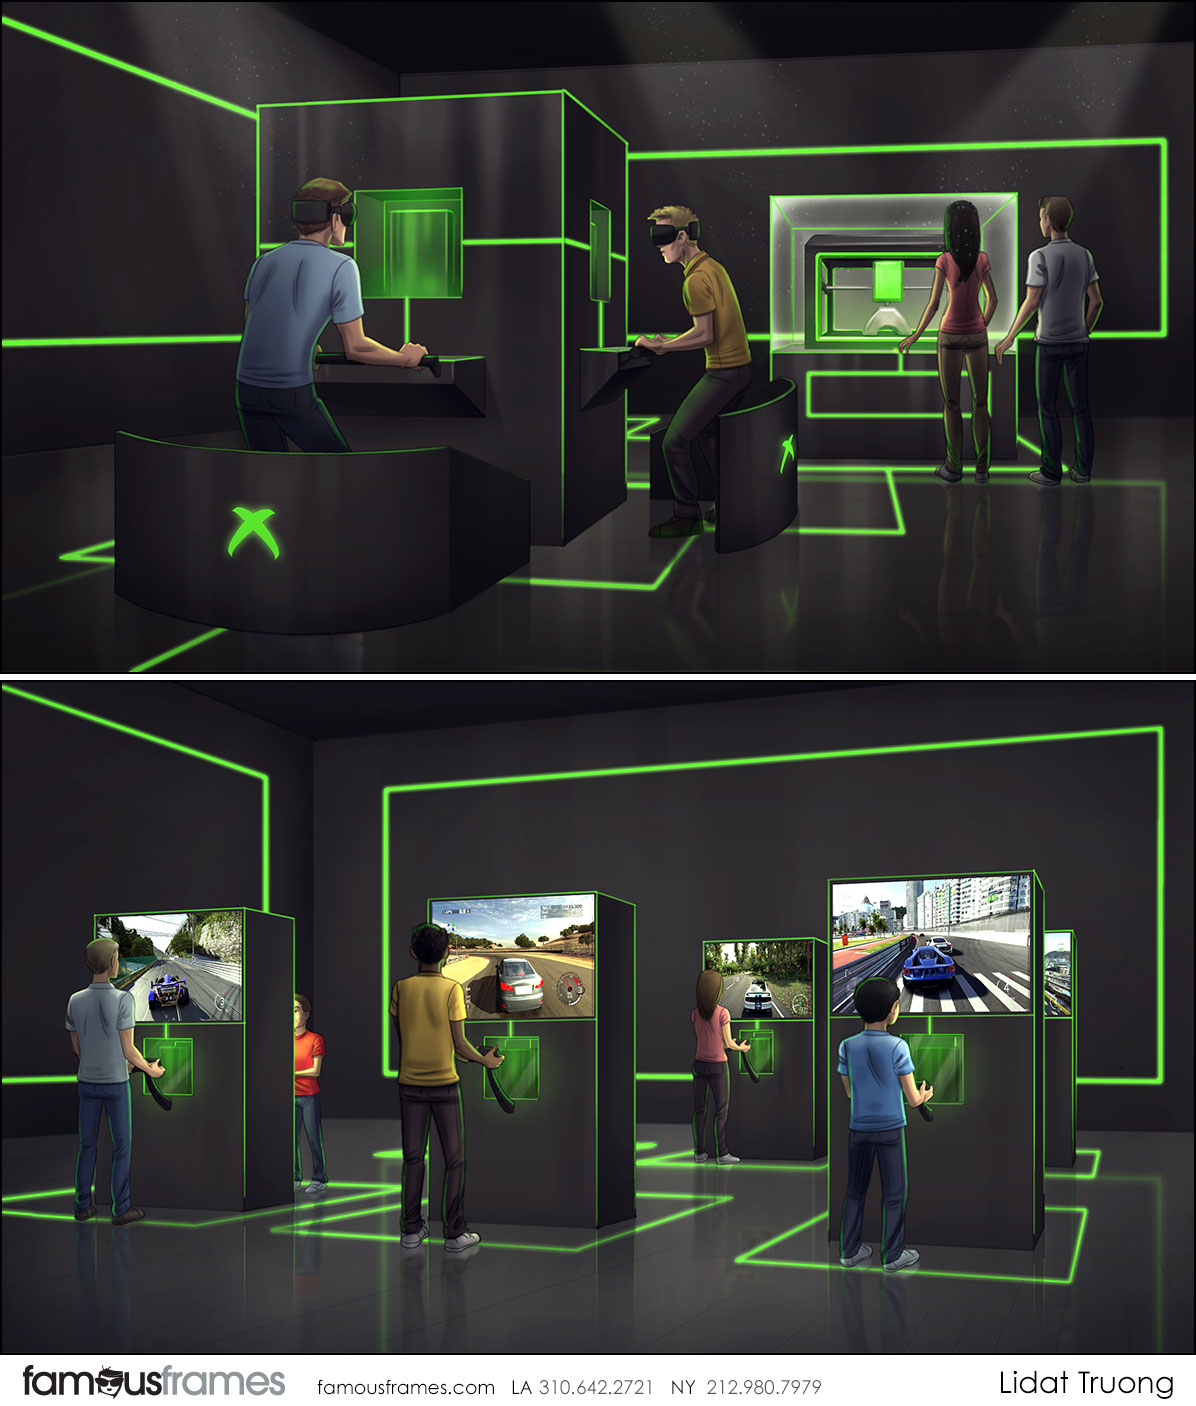 Lidat Truong's Events / Displays storyboard art (Image #226_41_1552670021)